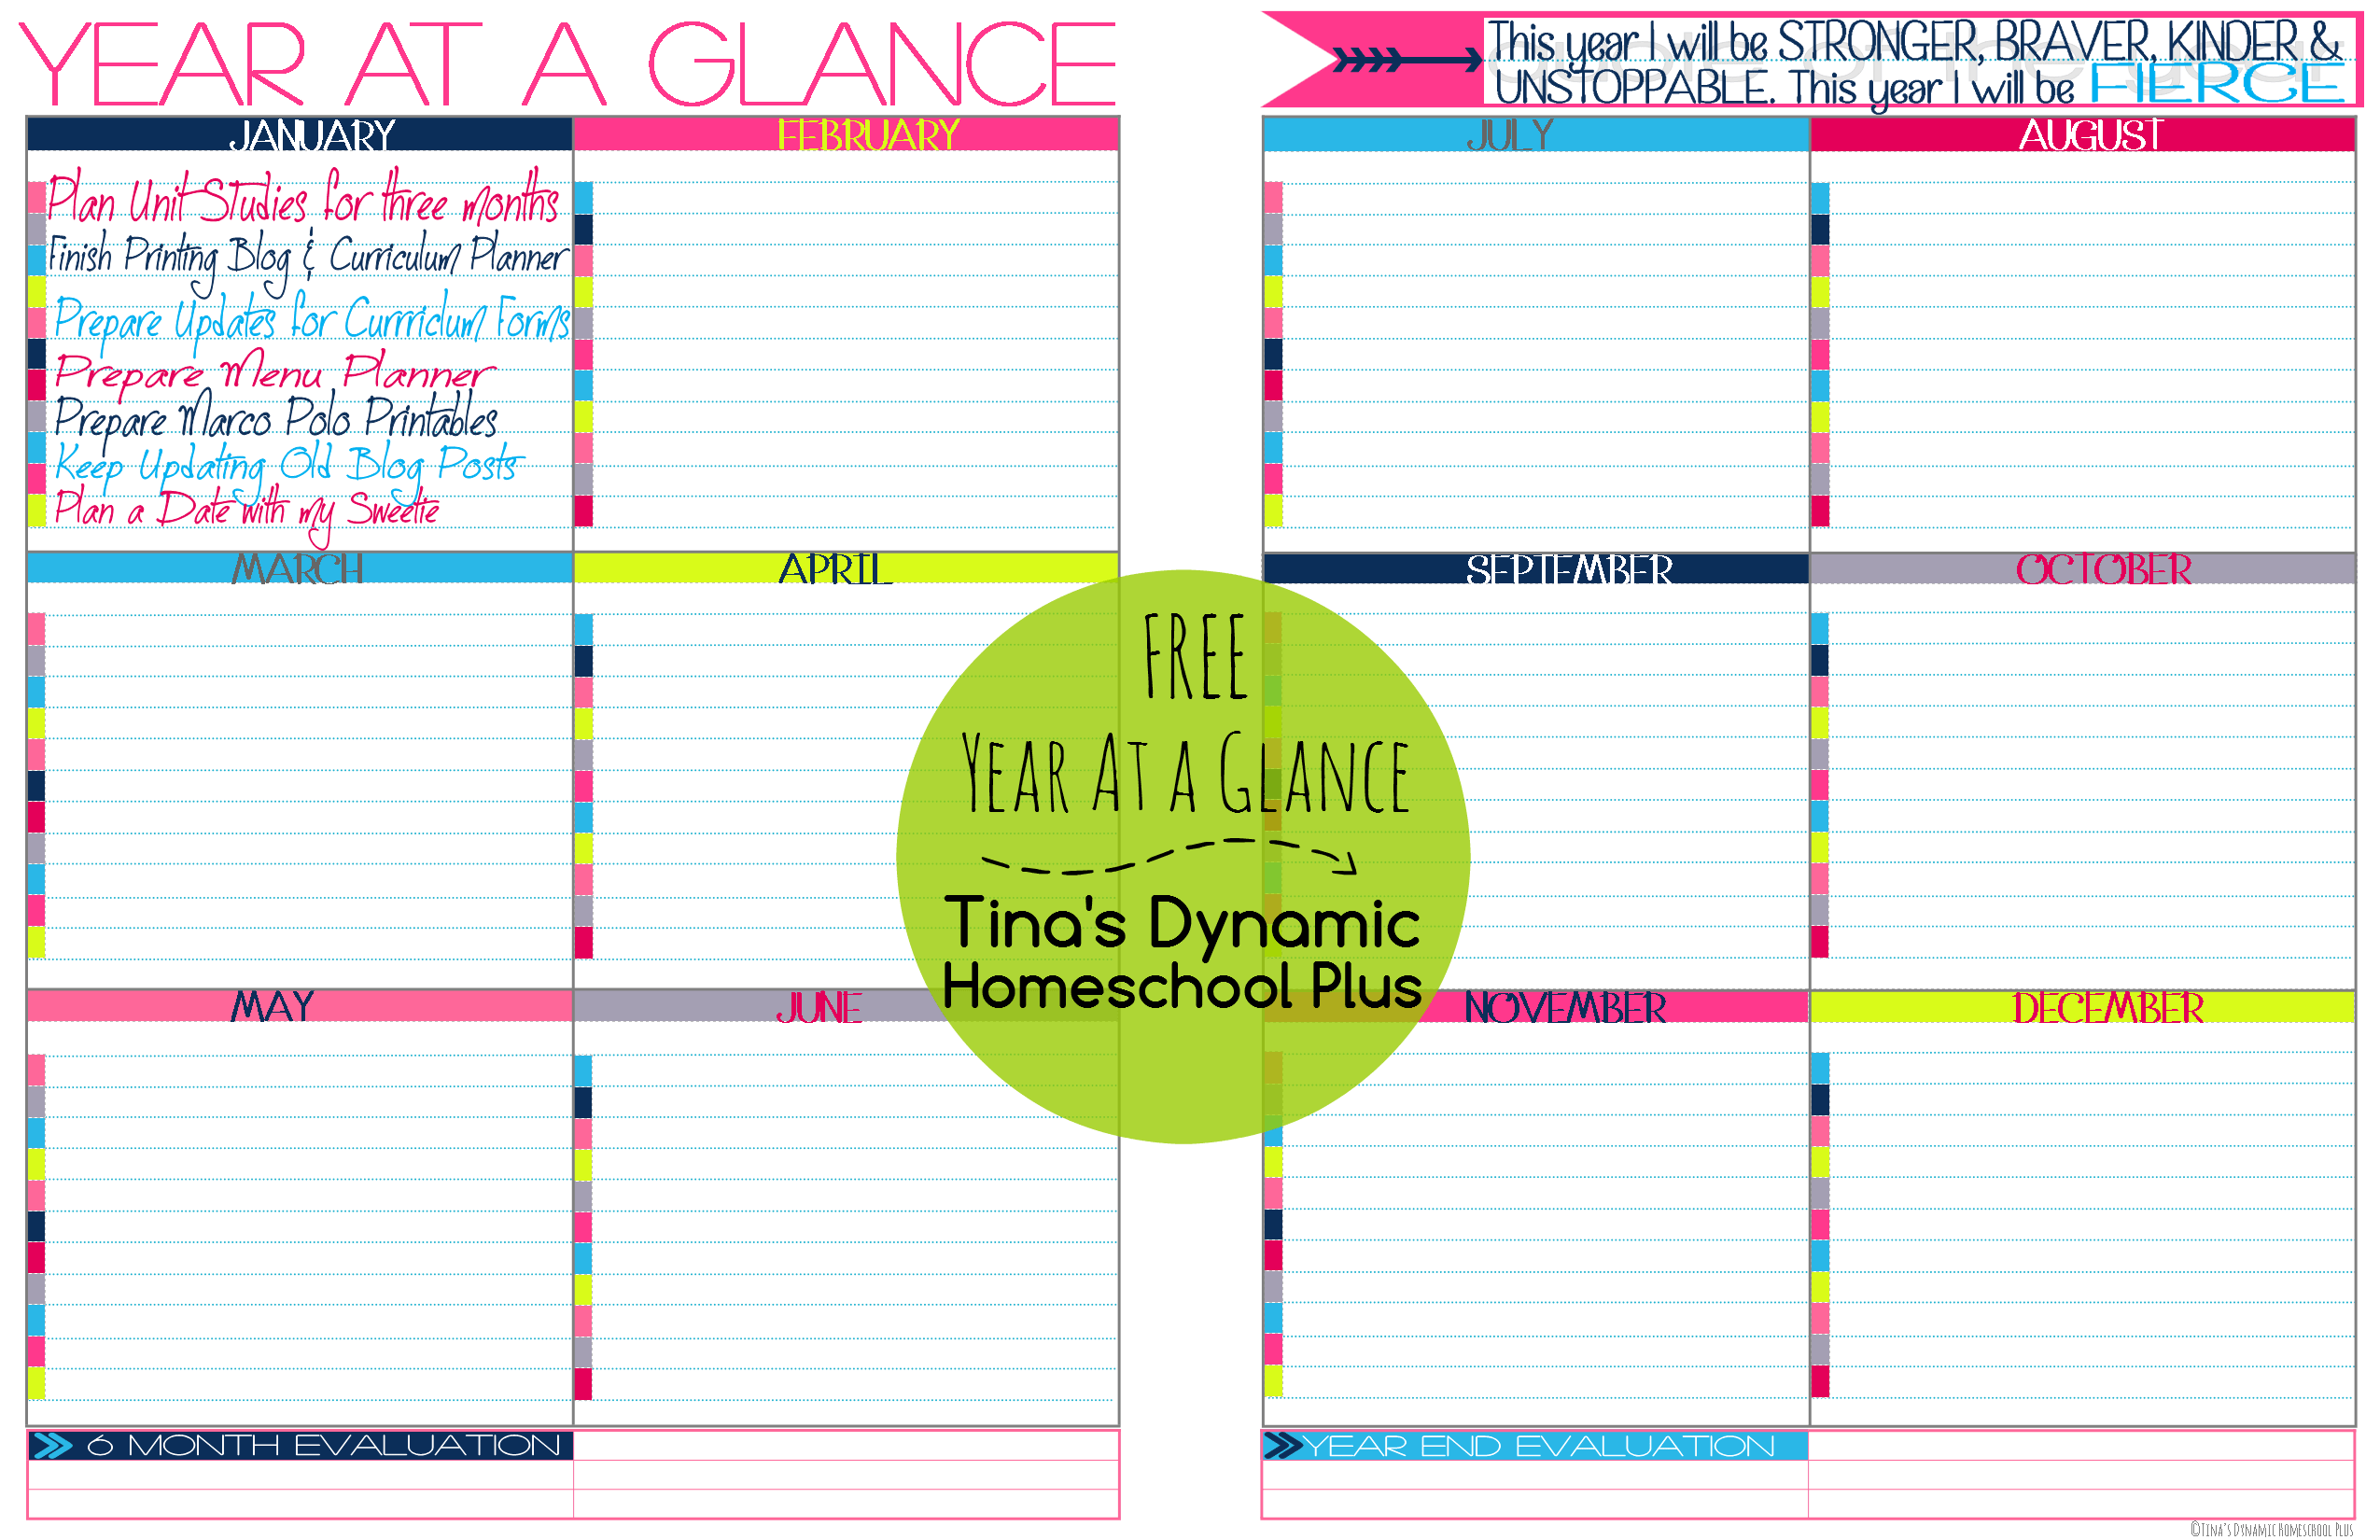 year at a glance template for teachers - free year at a glance form